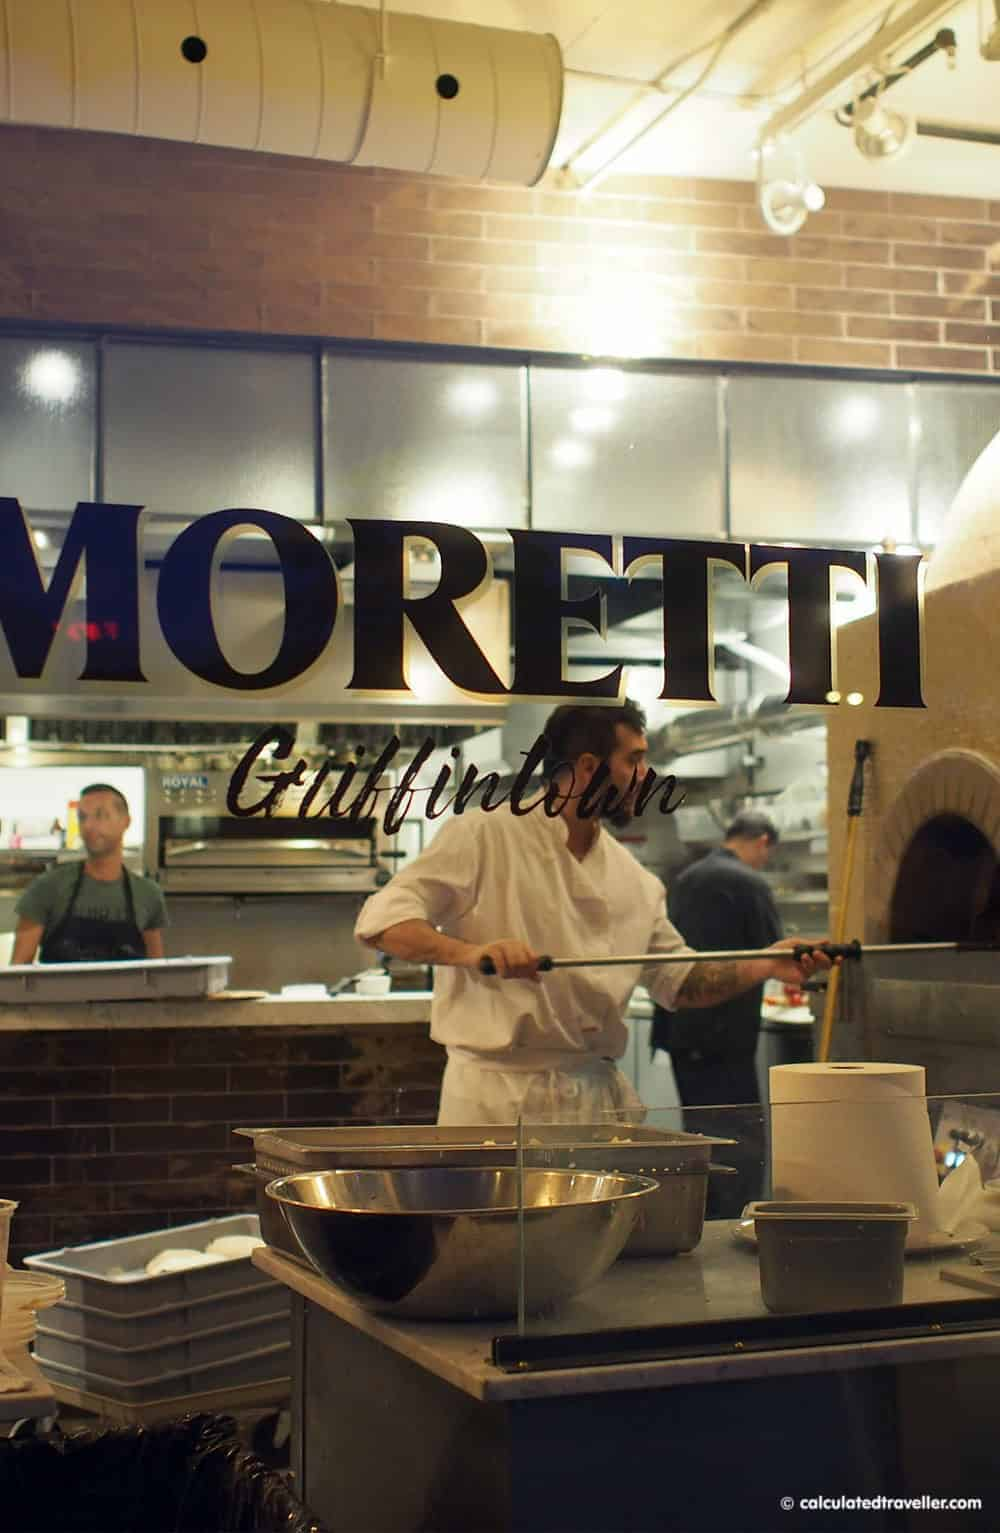 4 Very Different Restaurants in Montreal Quebec - Pizzeria Morreti by Calculated Traveller | #pizza #Montreal #Quebec #restaurant